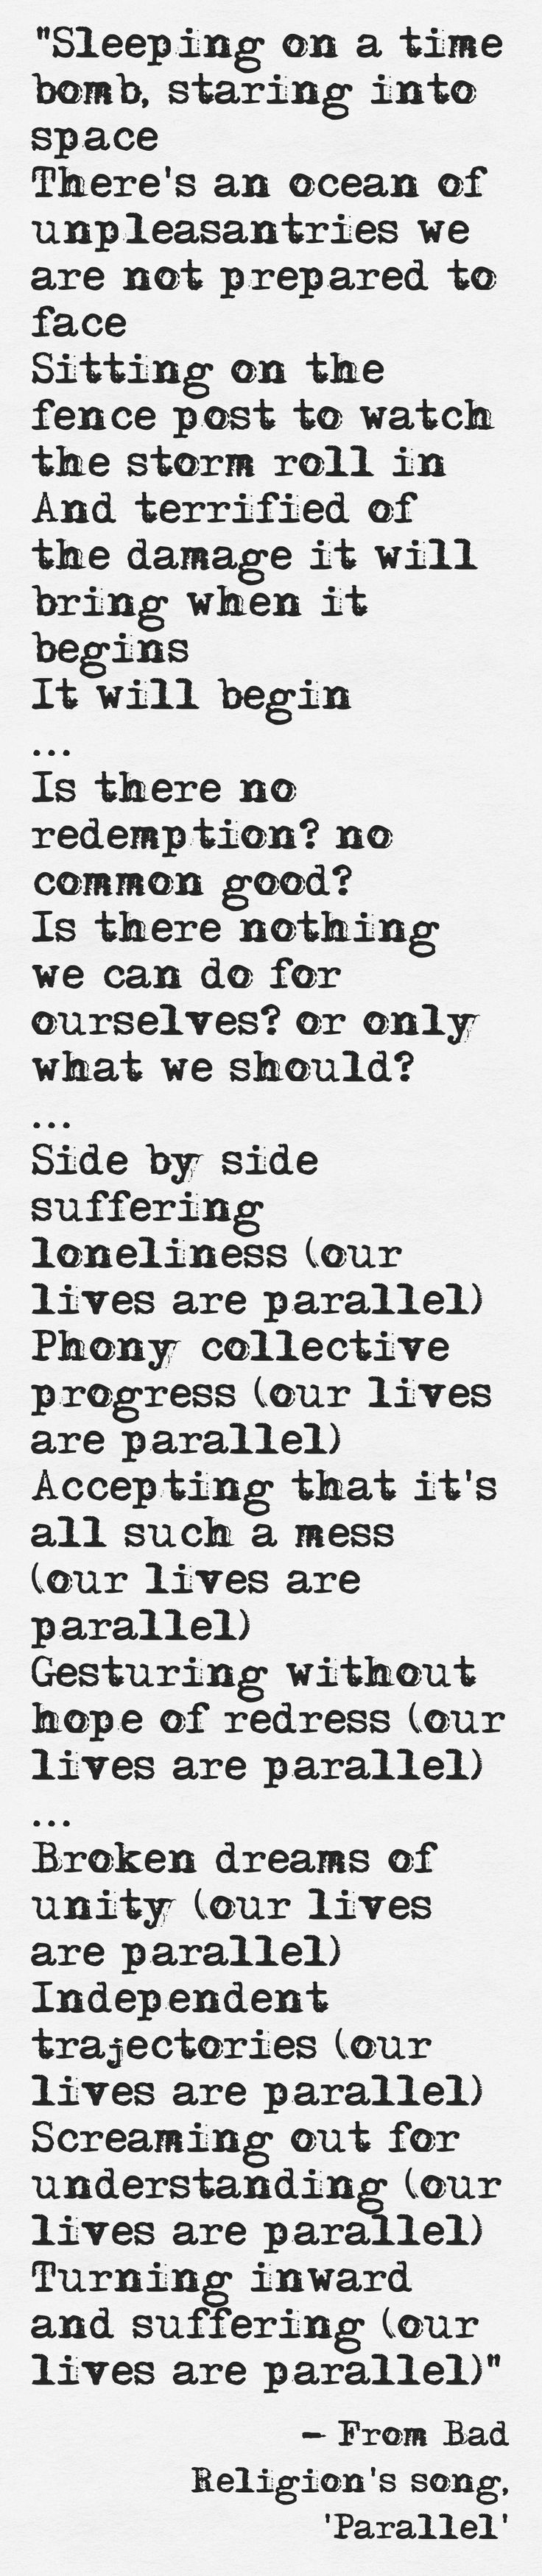 Lyrics from Bad Religion's song, 'Parallel'